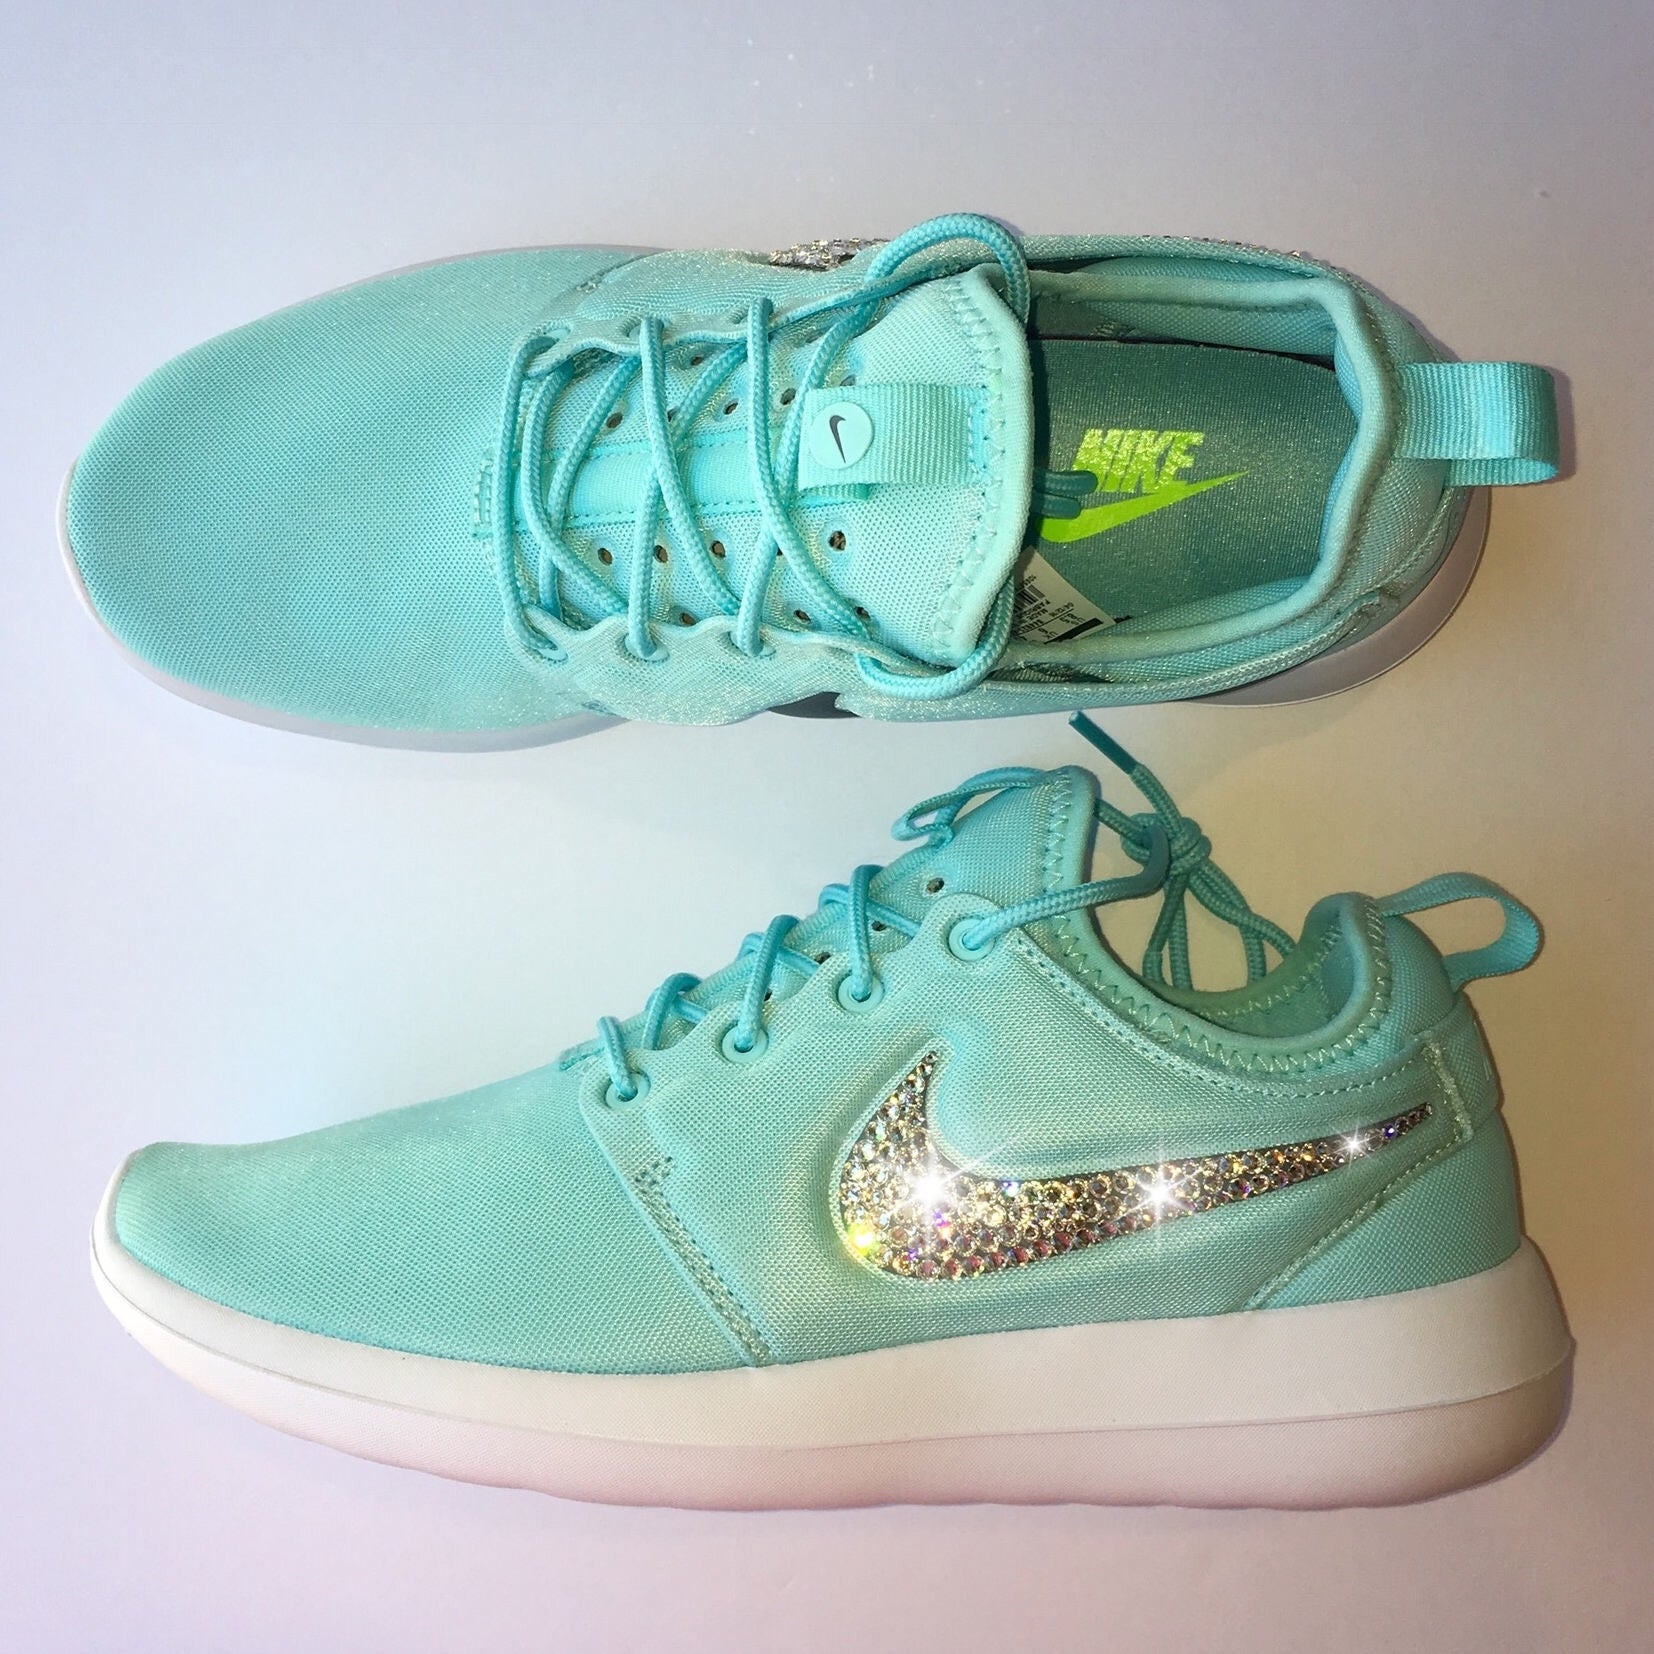 0437265d33c6 ... Bling Nike Roshe Two Women s Shoes - Tiffany Blue - Bedazzled with Real  Swarovski Crystals ...